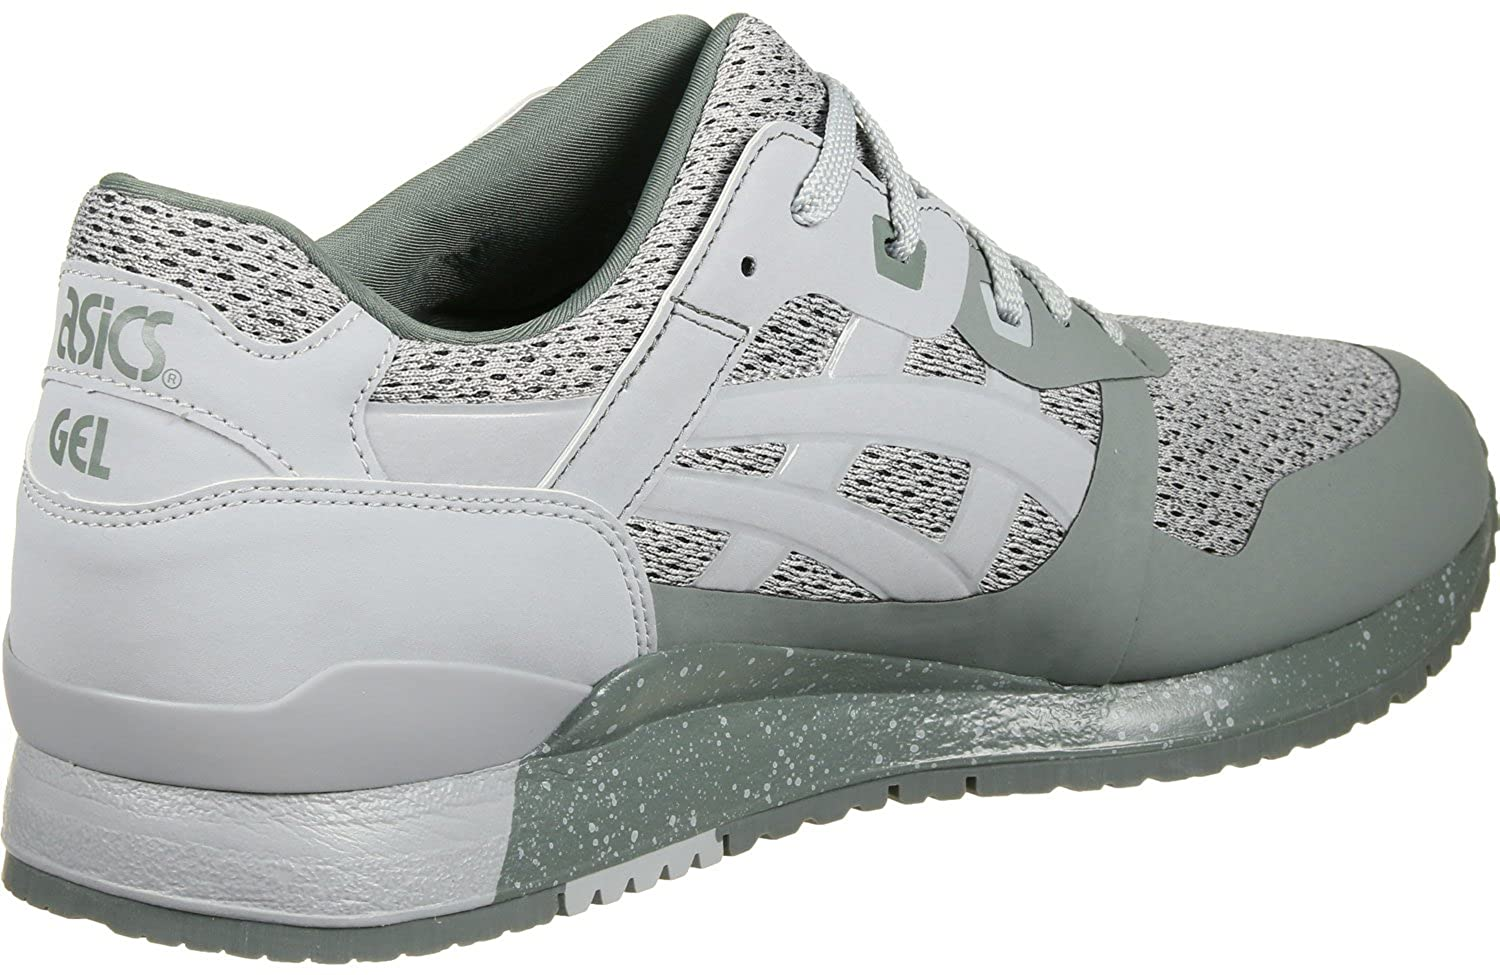 pas cher pour réduction 223b7 d22f1 CHAUSSURES ASICS GEL LYTE III NS AGAVE GREY H715N-8196